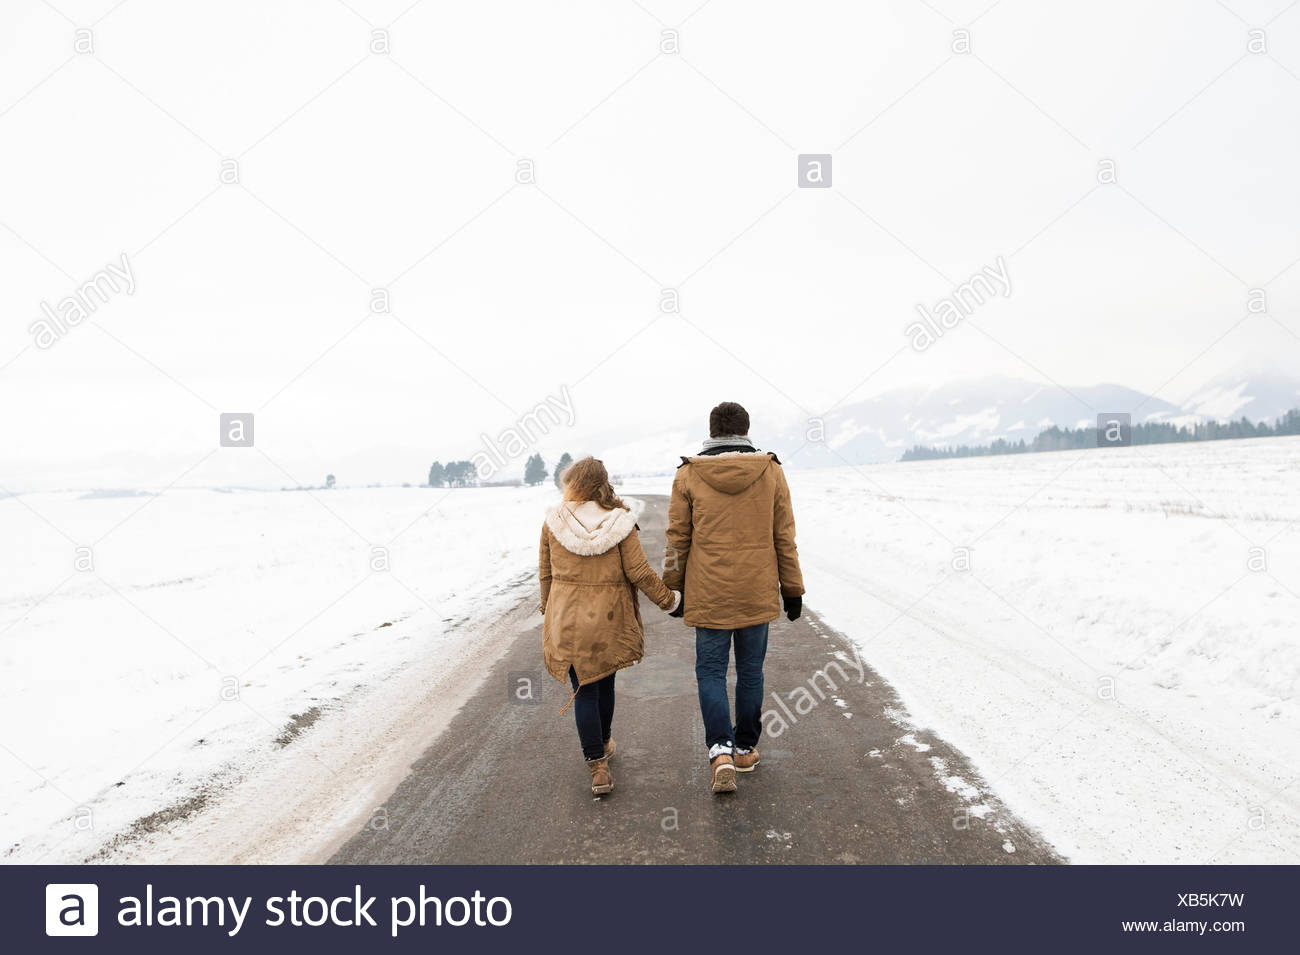 Back view of young couple in love walking hand in hand on country road in snow-covered landscape - Stock Image